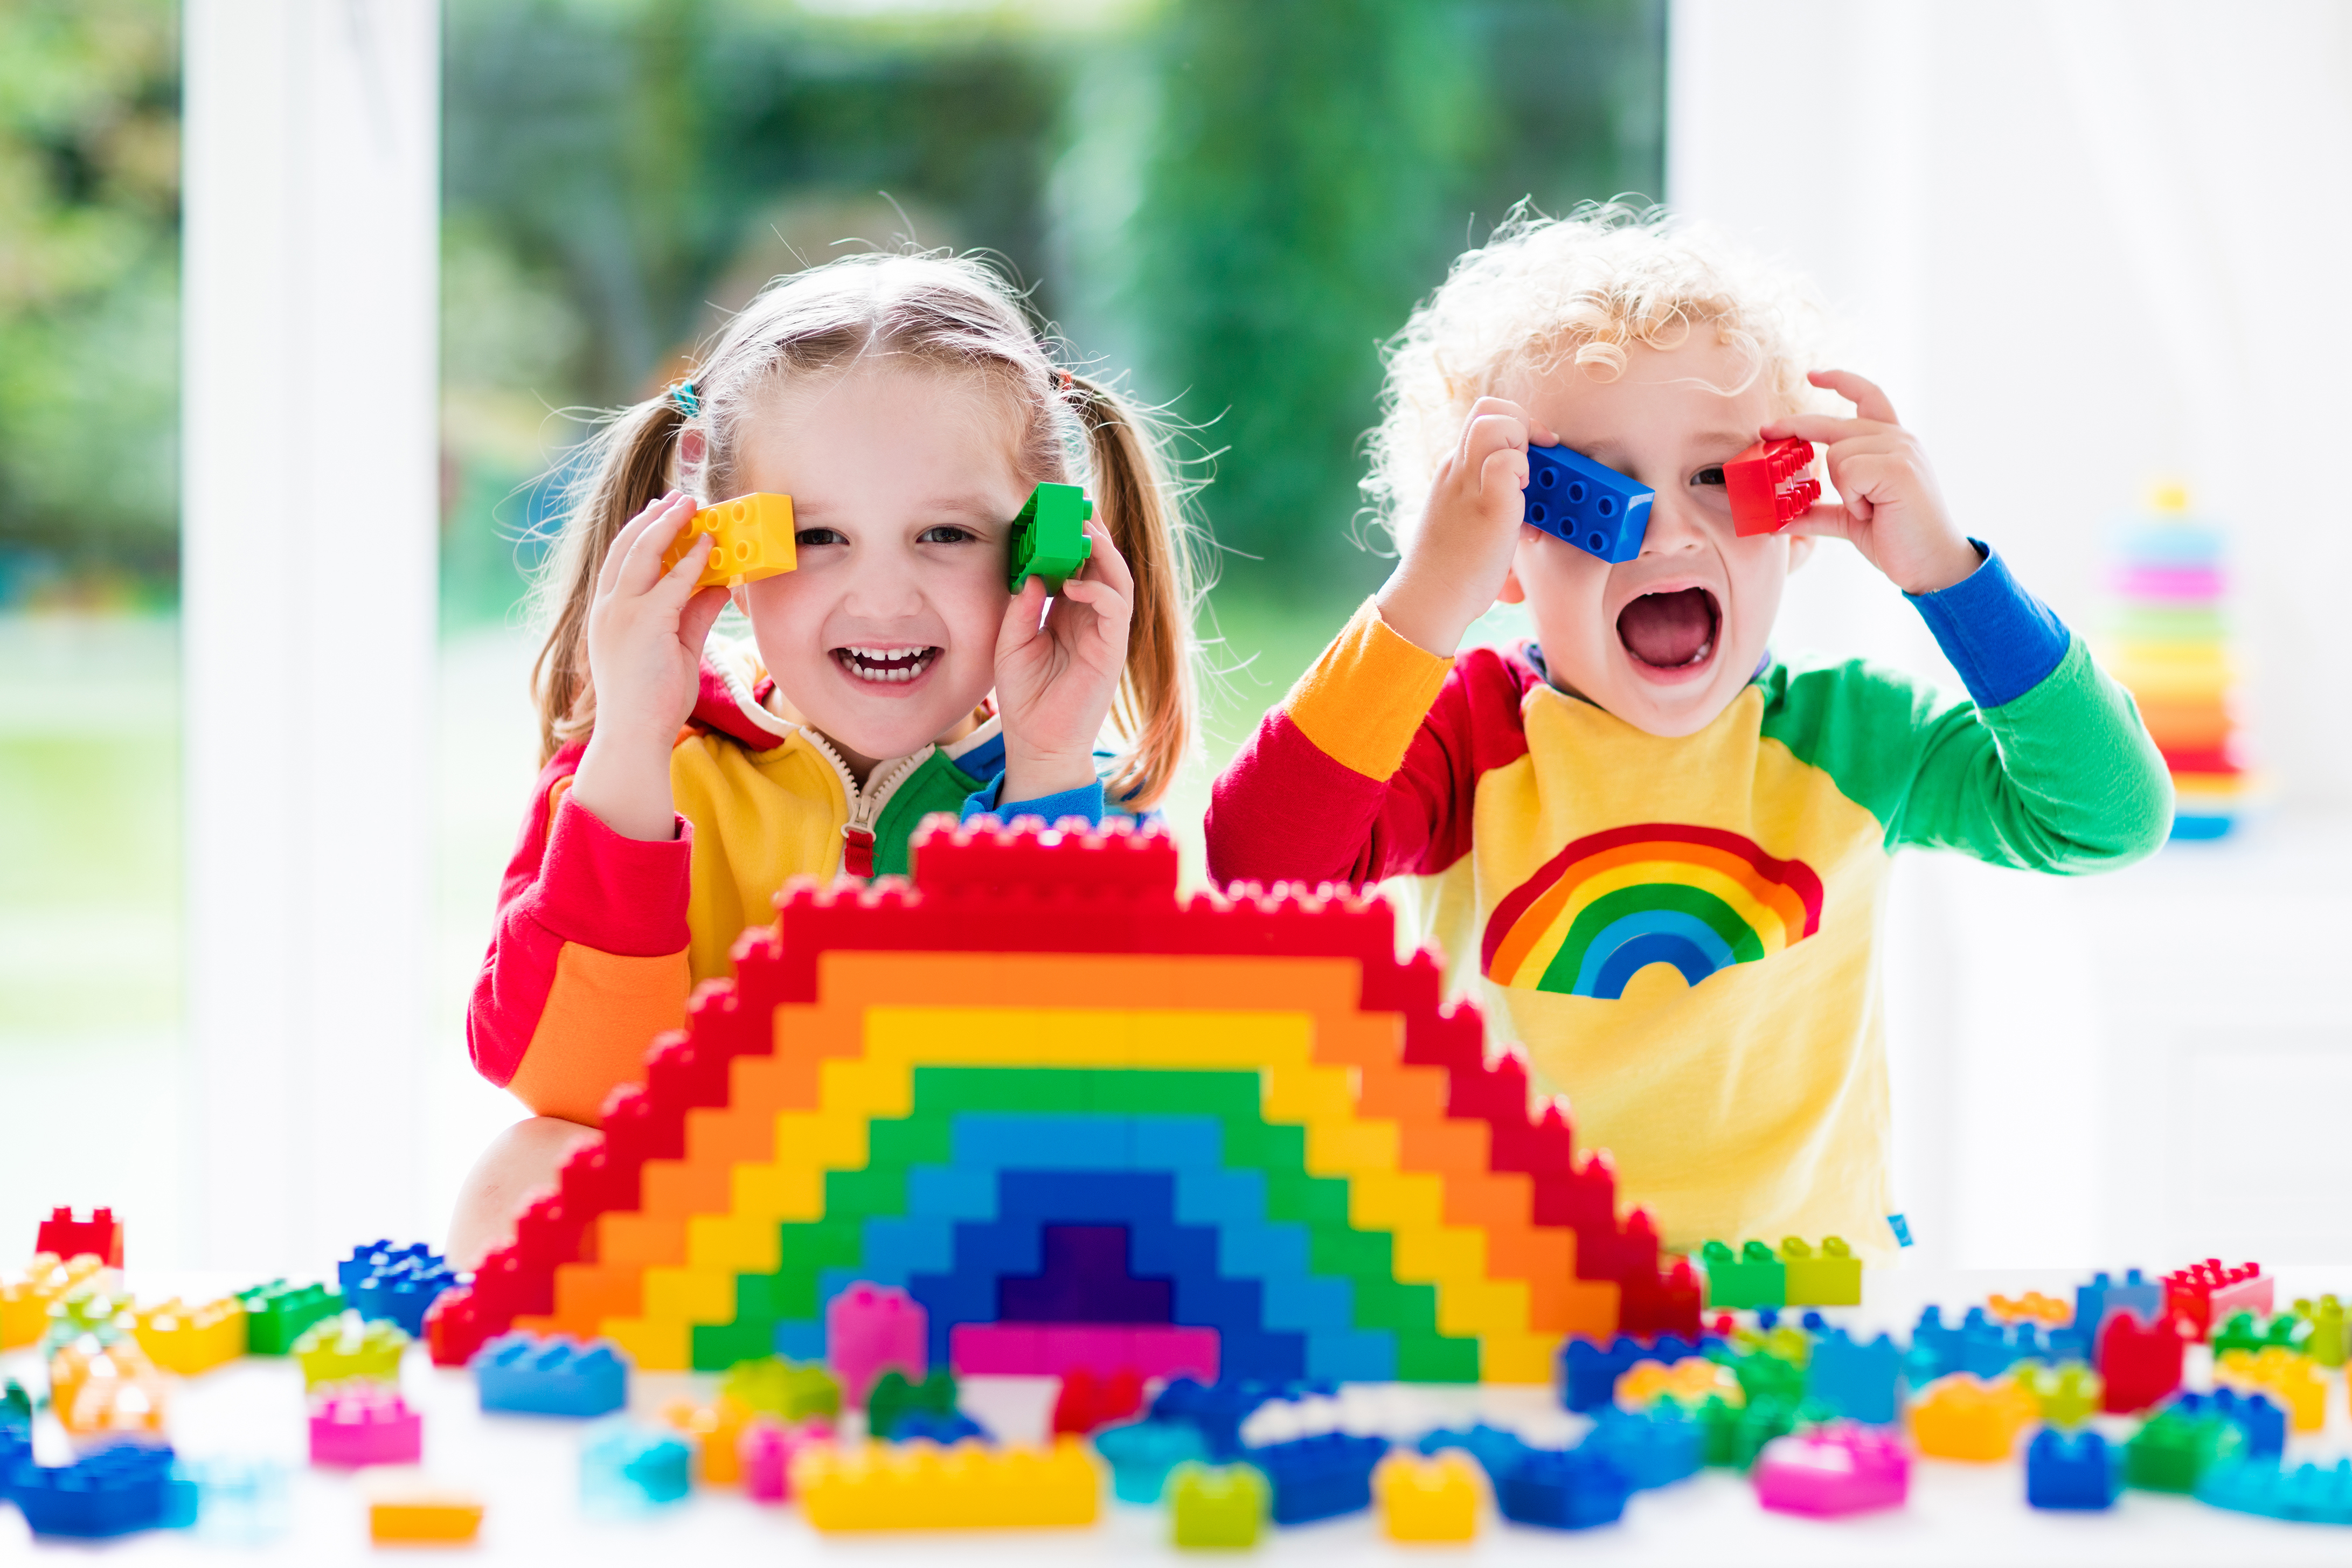 Learning Through Play With The Lego Foundation